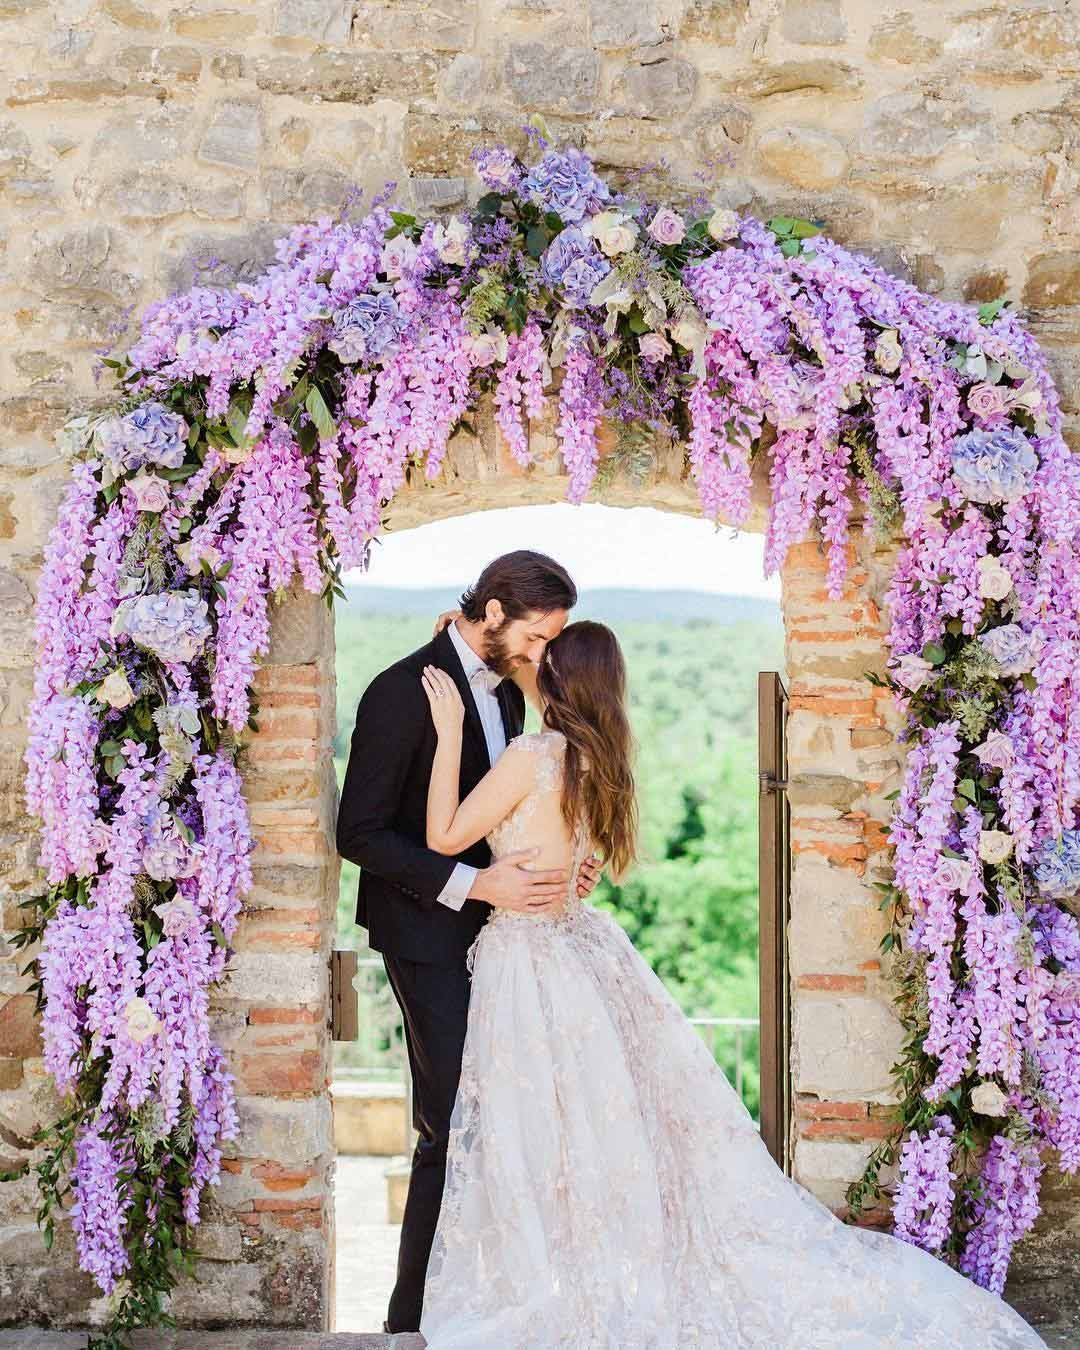 wedding colors purple lavender flowers arch